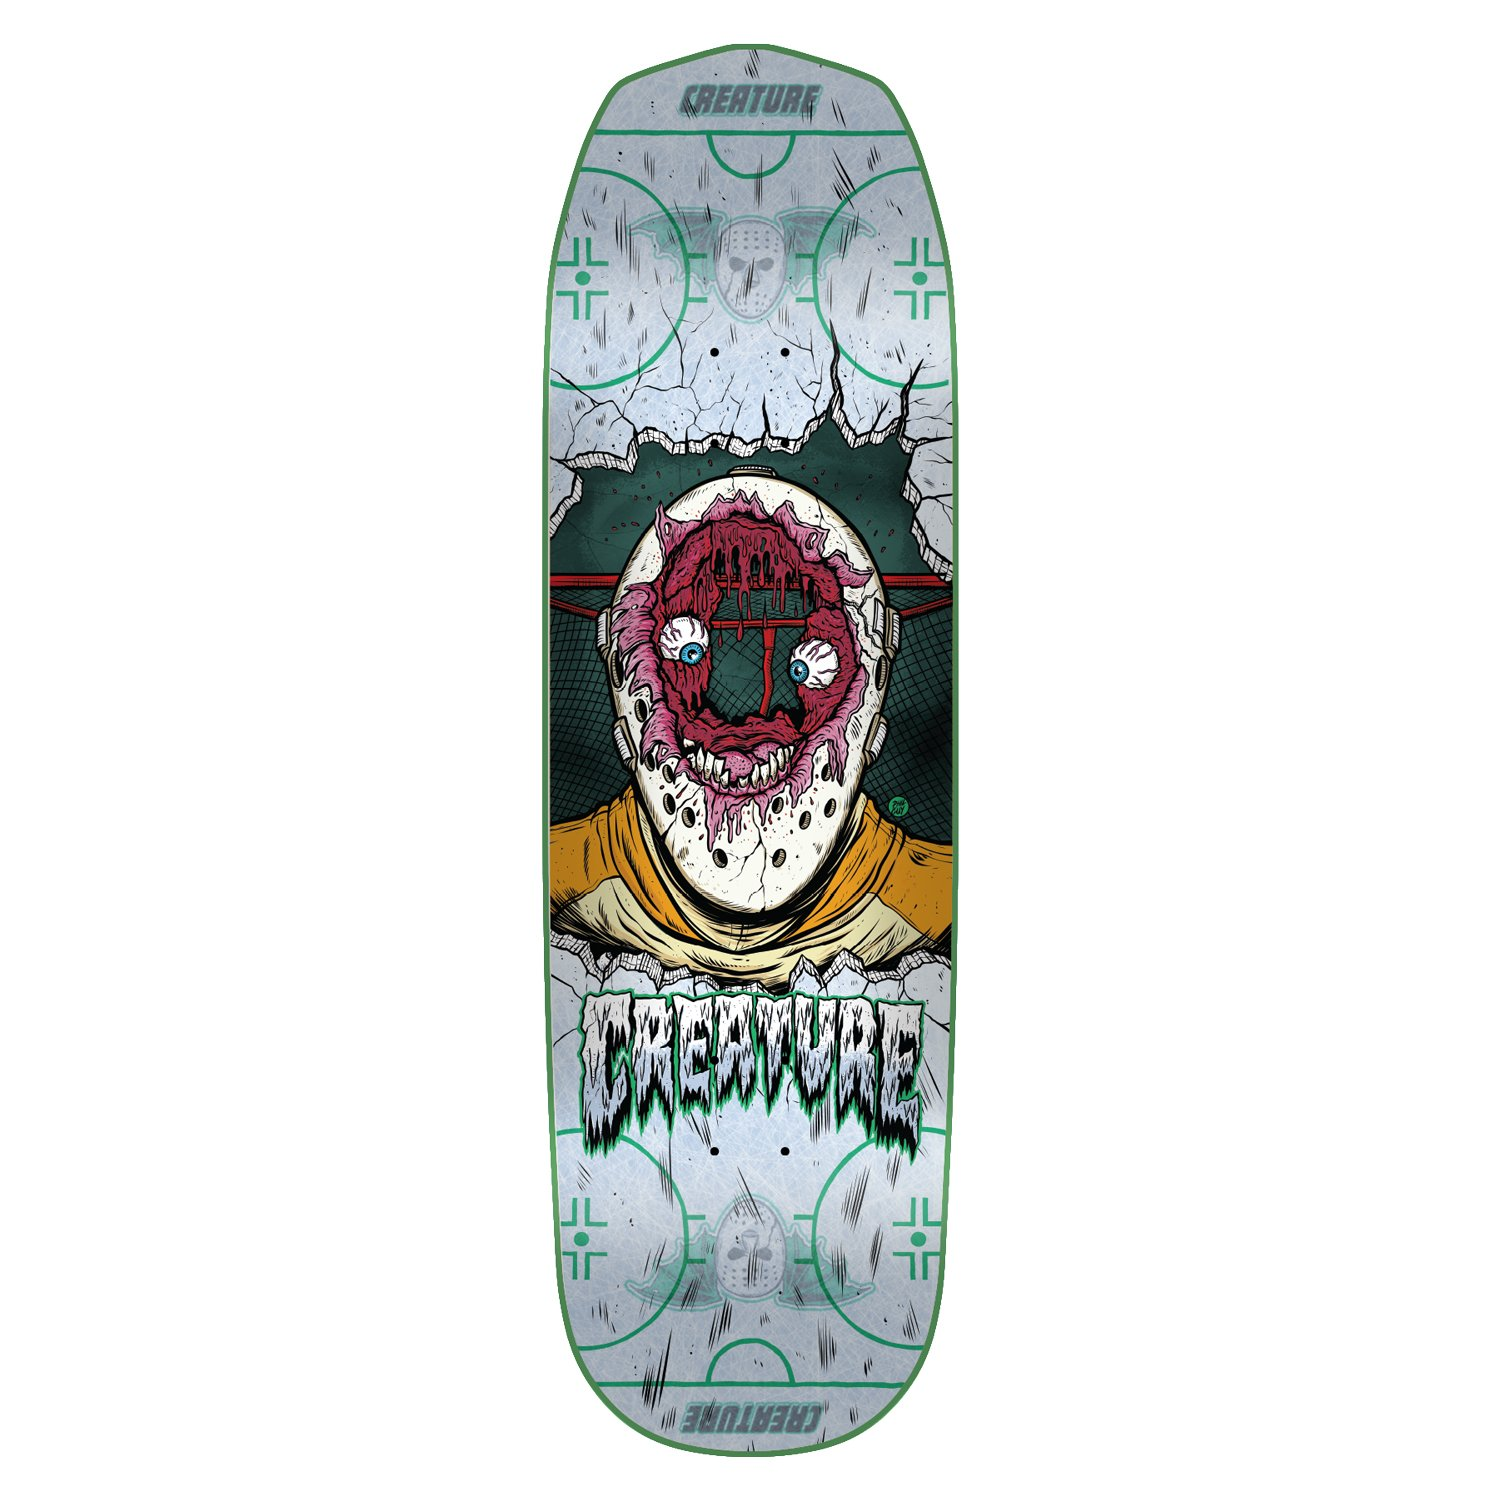 Creature Skateboard Deck Slapshot SM EverSlick 8.2'' by Creature (Image #1)